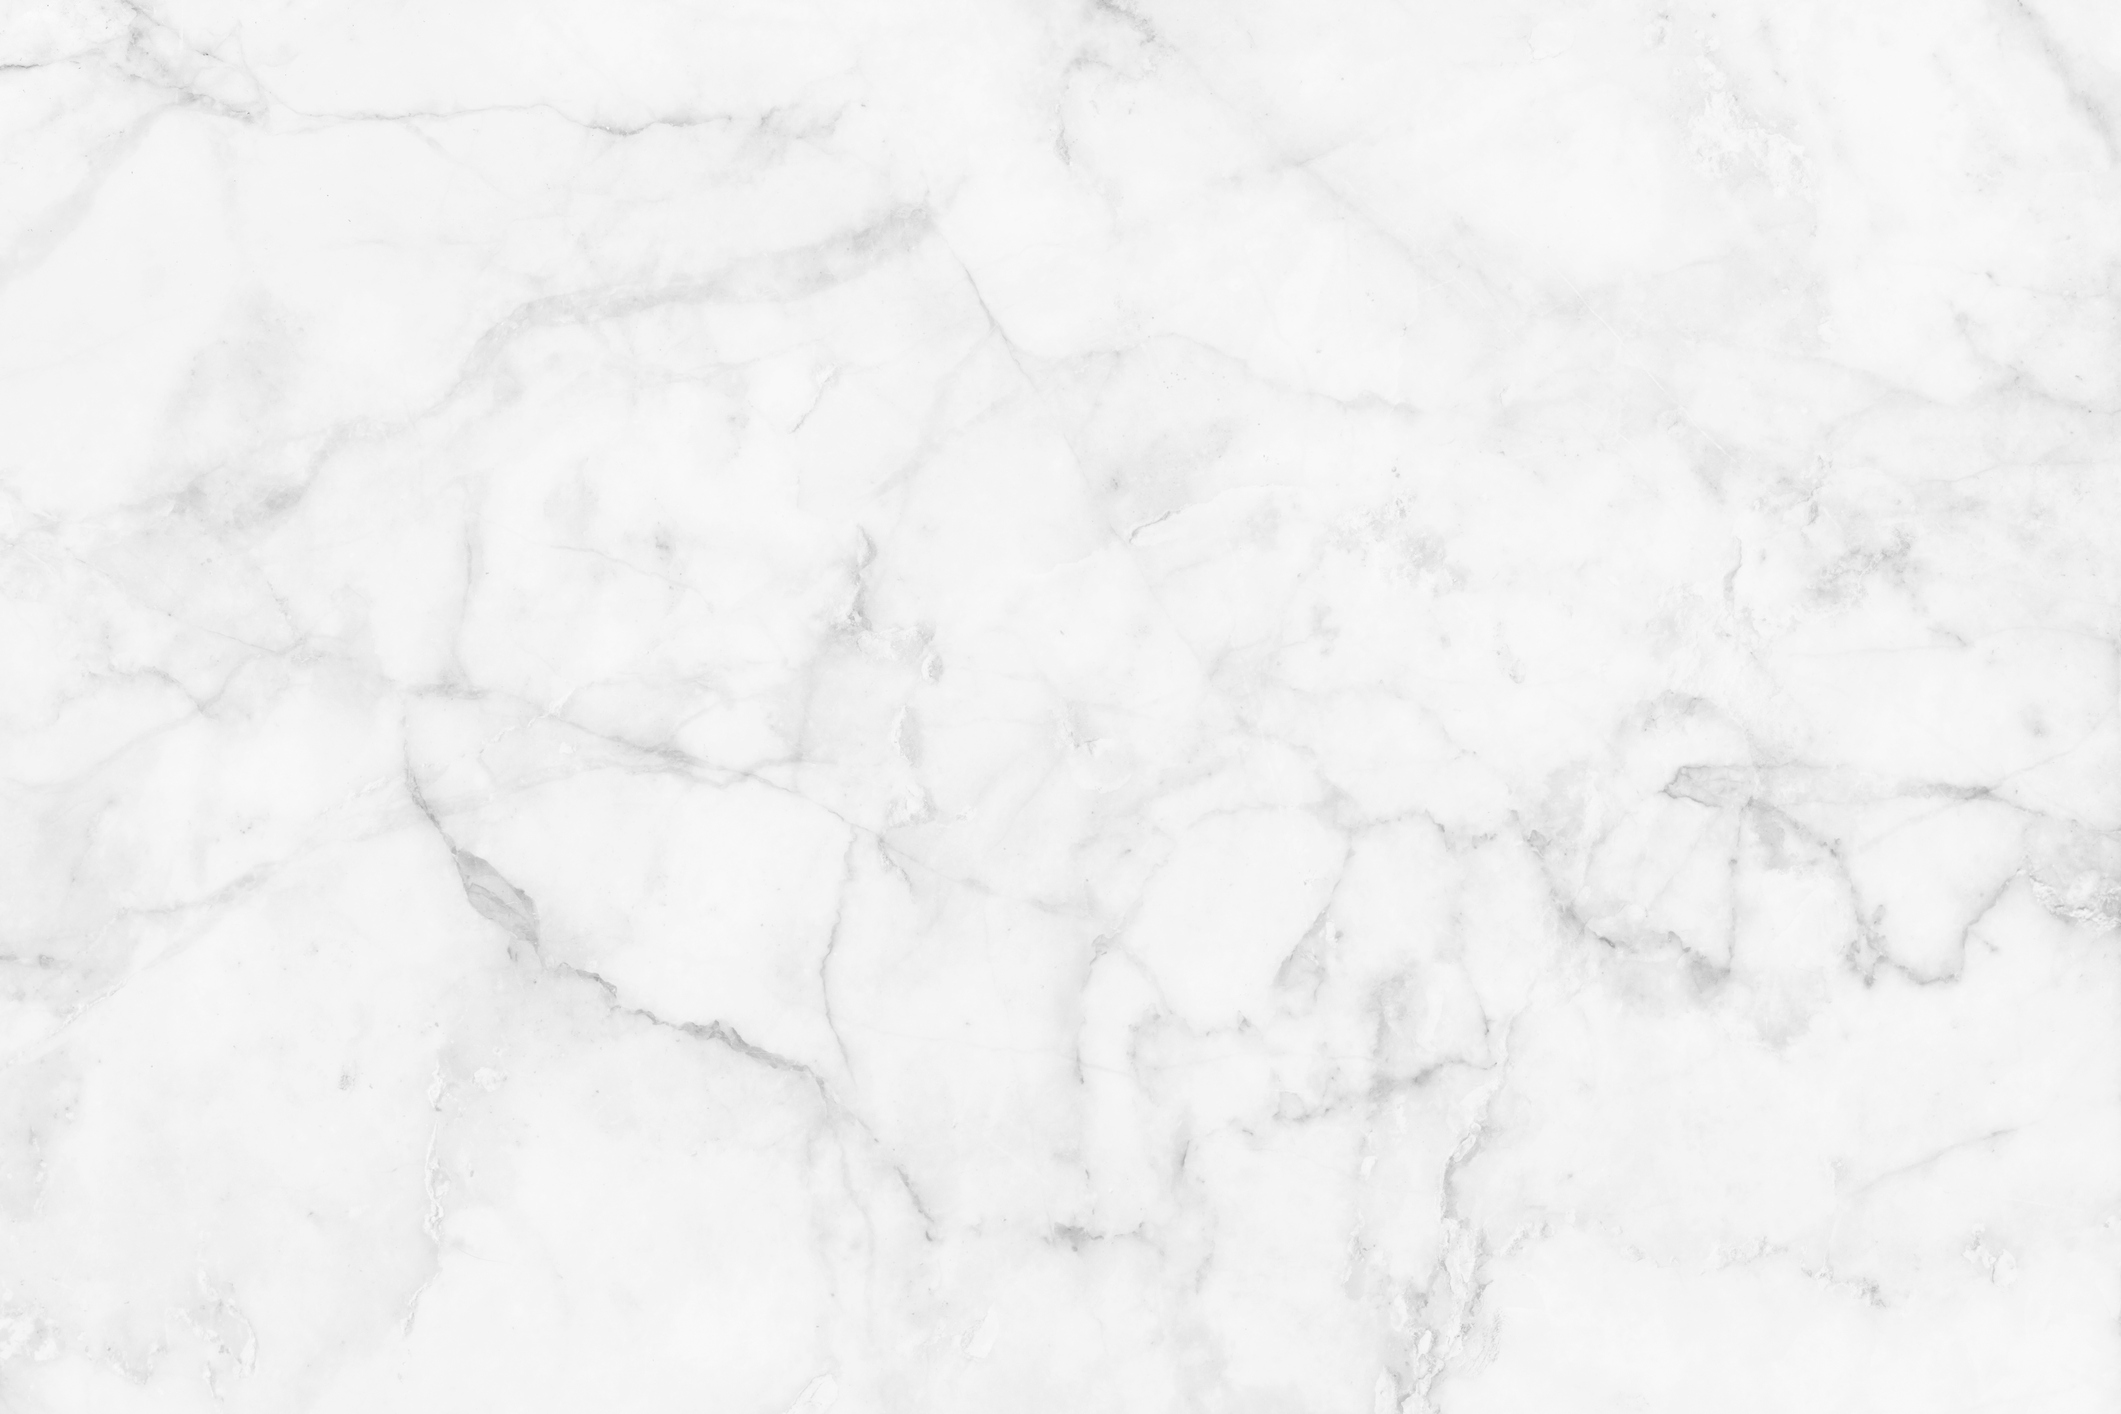 White marble patterned texture background. -